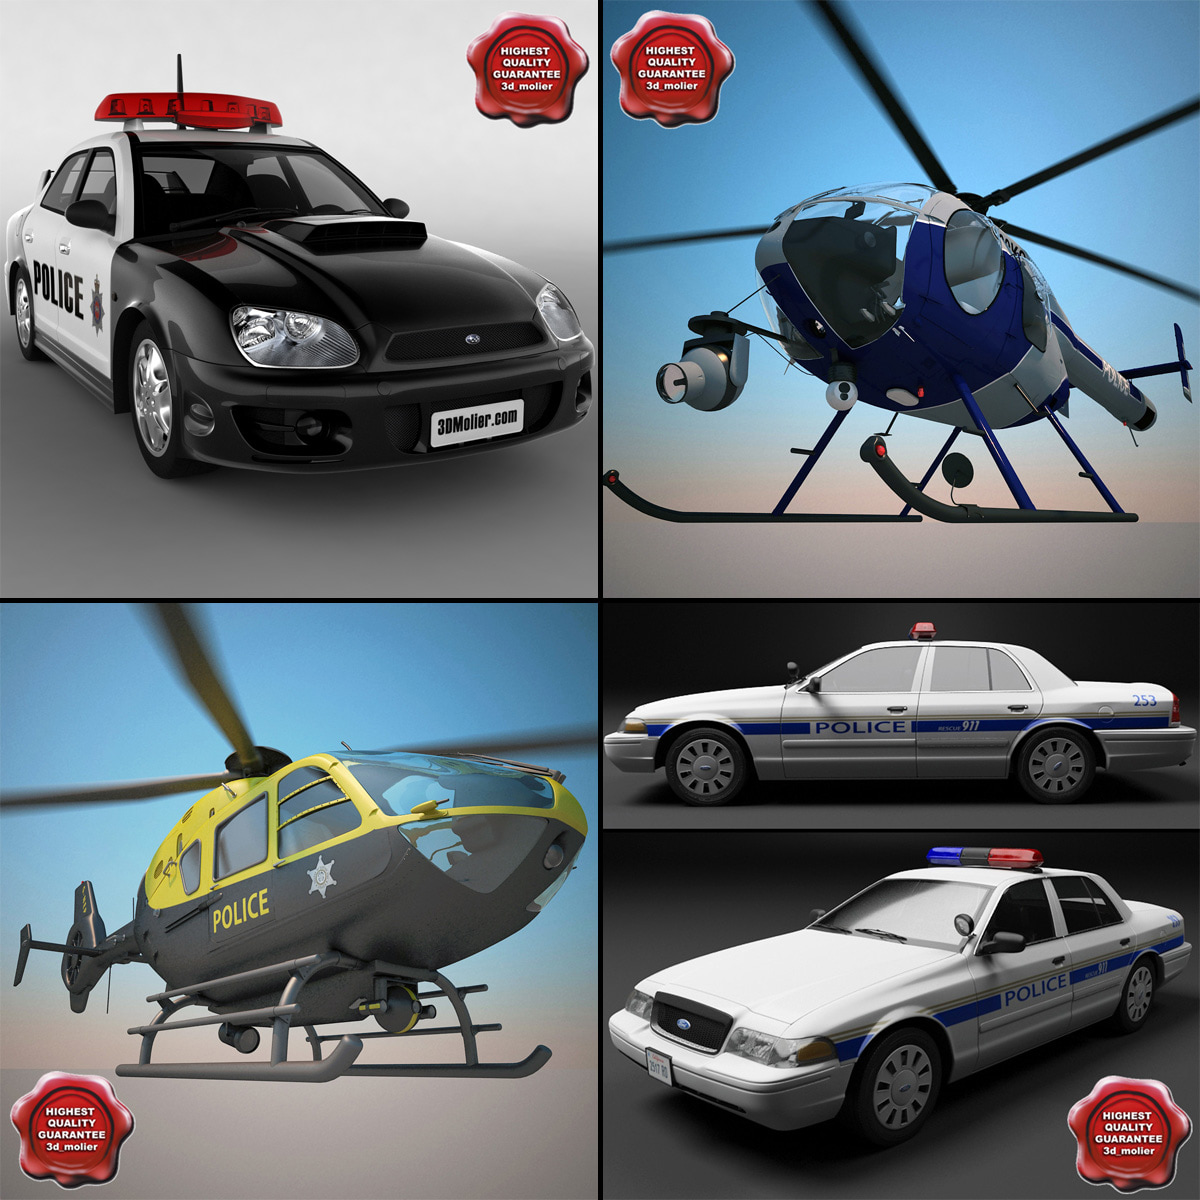 Police_Vehicles_Collection_00.jpg